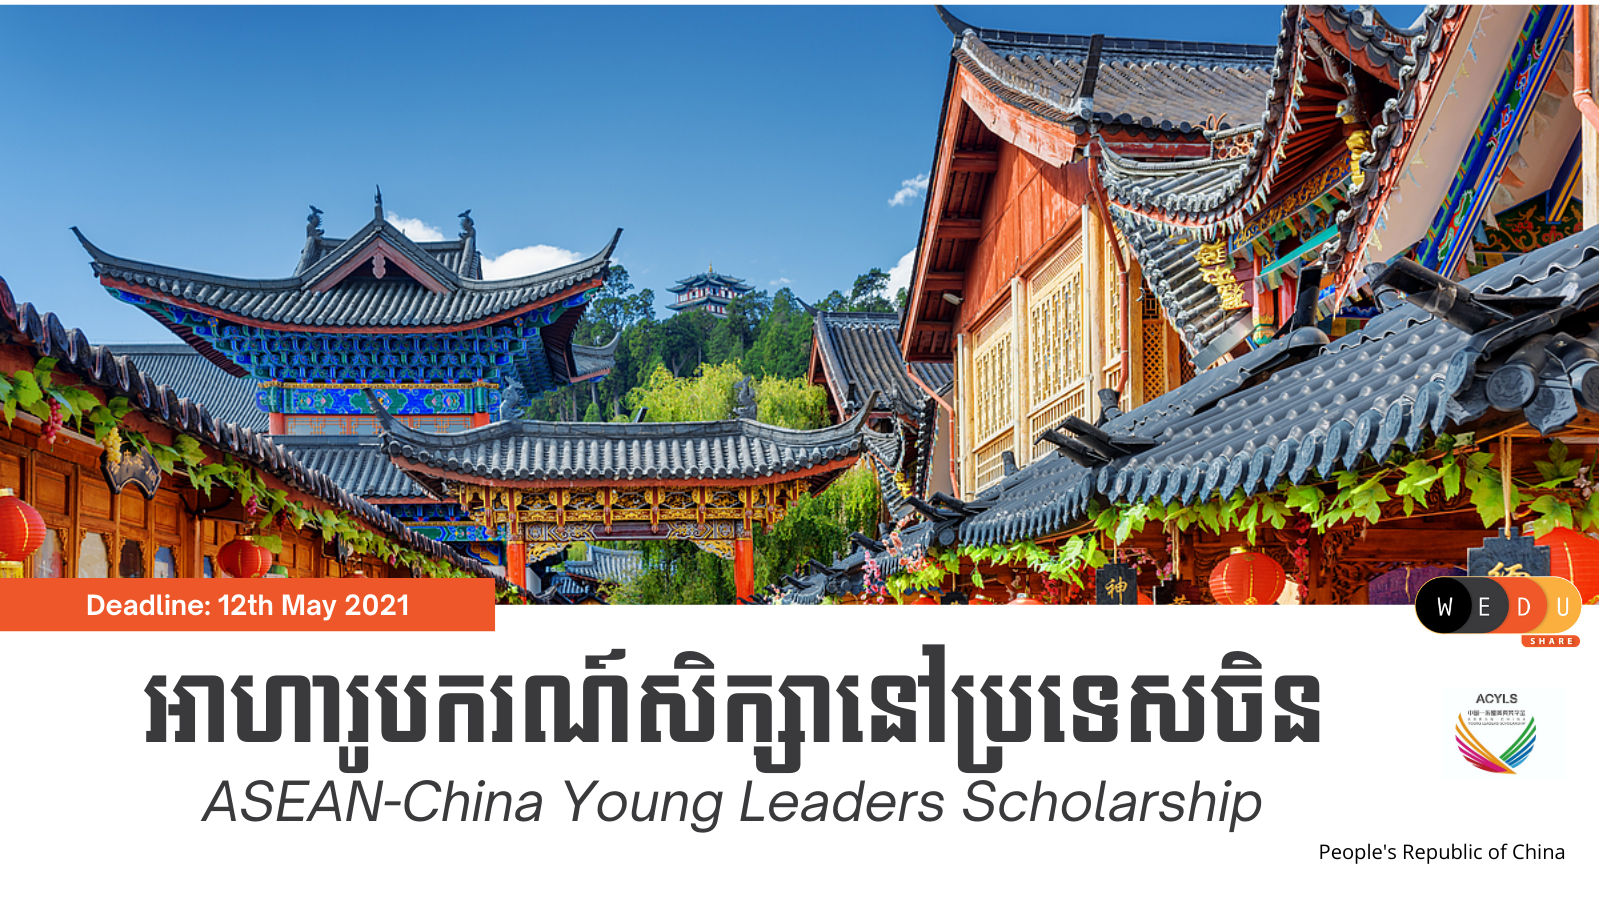 ASEAN-China Young Leaders Scholarship